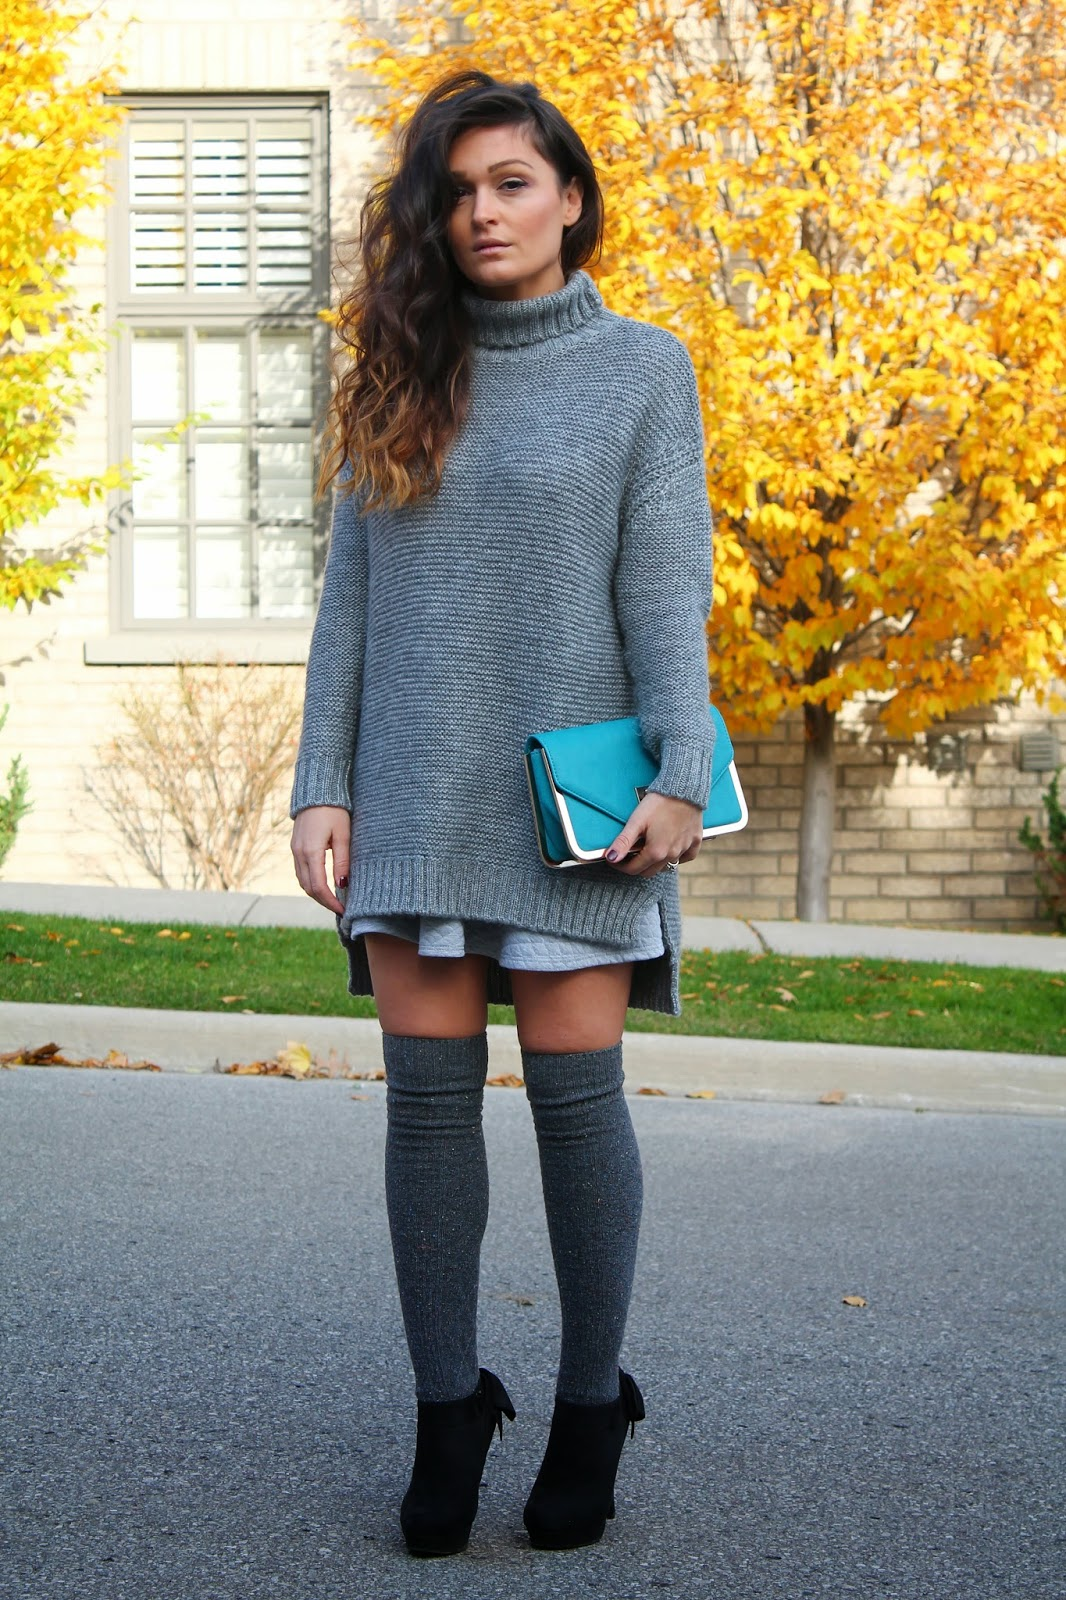 d03c69a0bc6 Tone on Tone Layering With Zara Sweaterdress